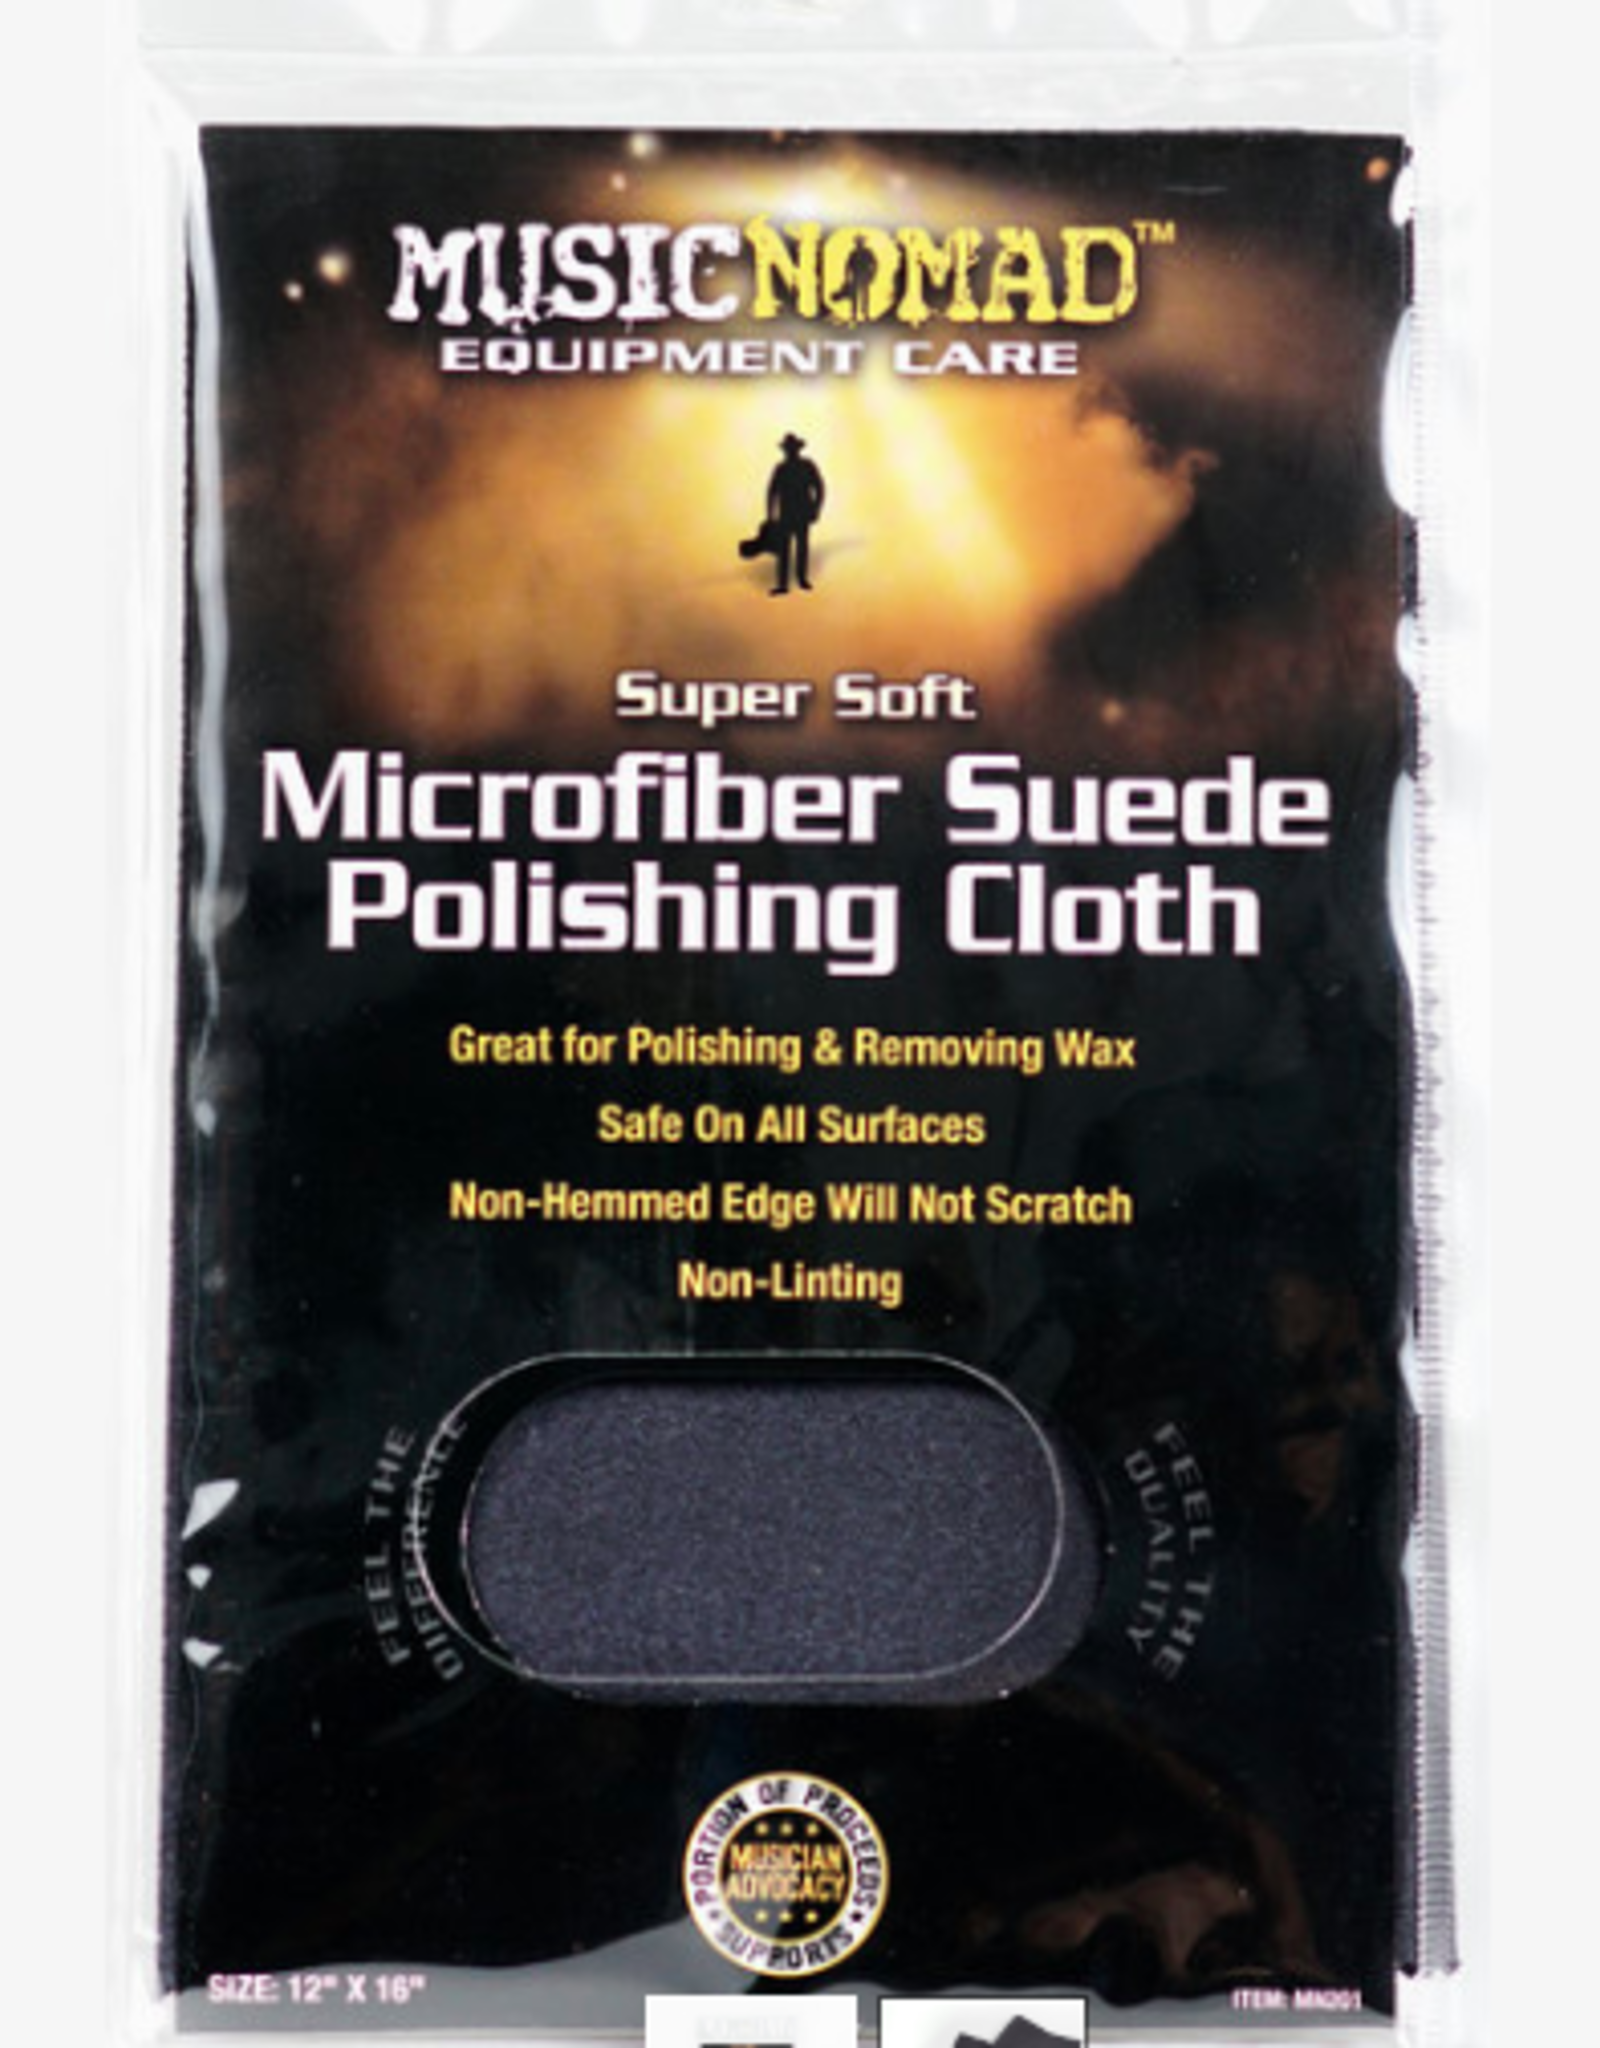 "MUSIC NOMAD Music Nomad Super Soft Edgeless Microfiber Suede Polishing Cloth 12"" x 16"""